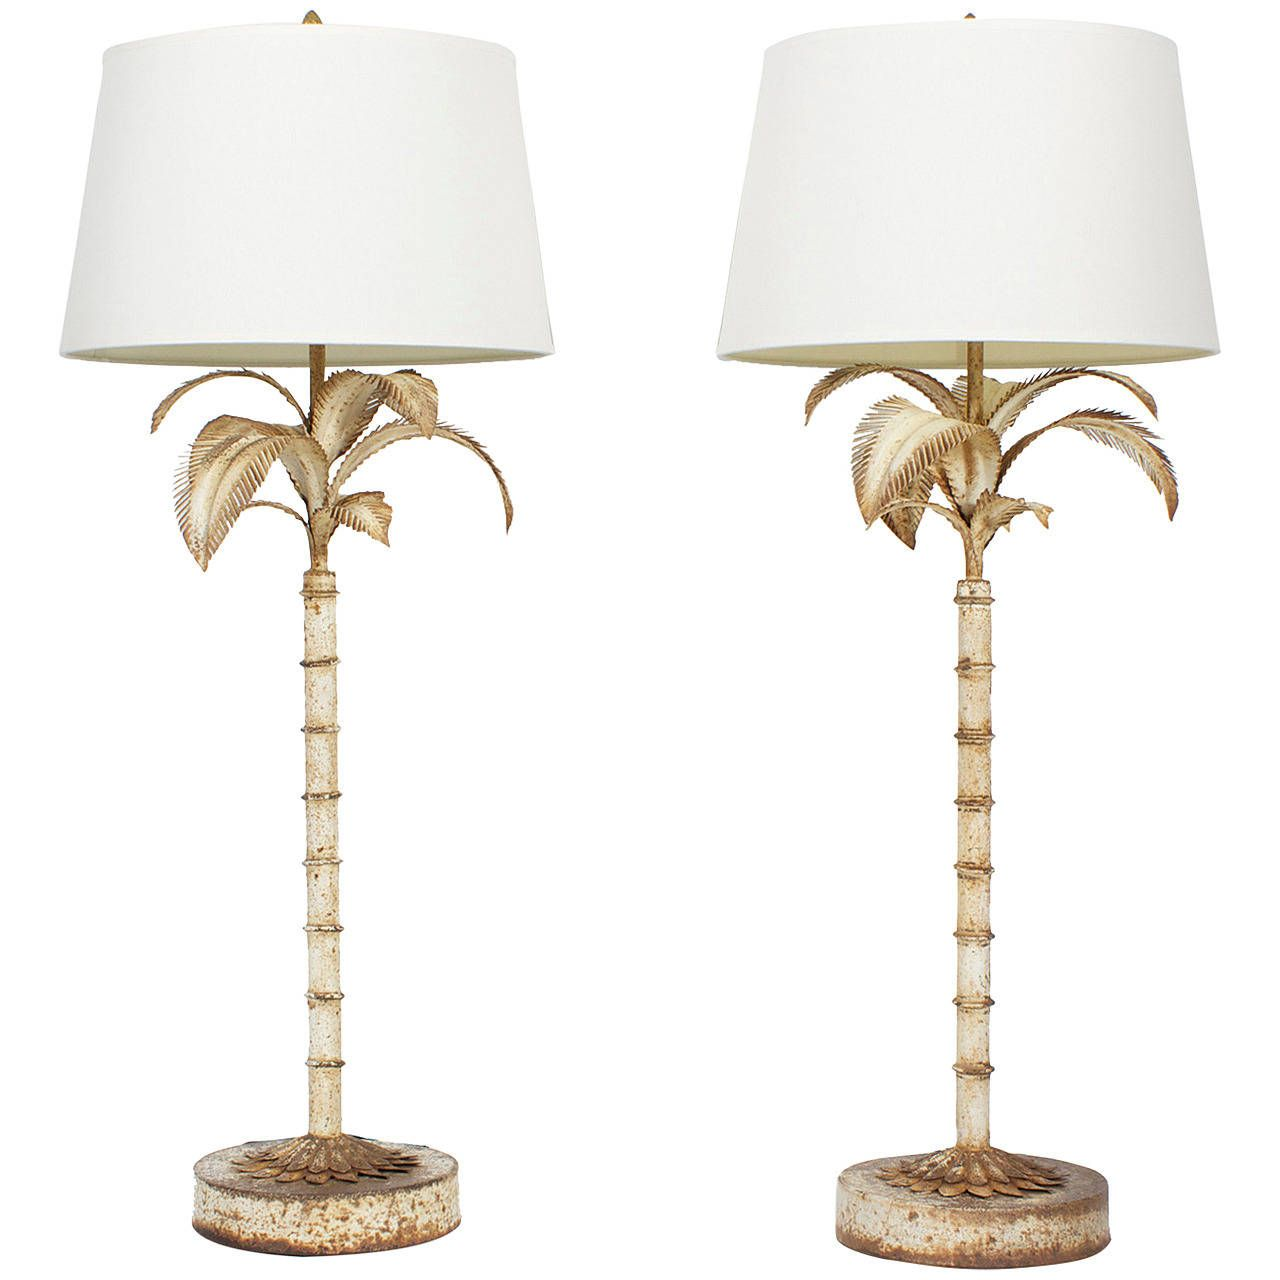 Pair of naturally oxidized tall tole palm tree lamps tree lamp pair of naturally oxidized tall tole palm tree lamps geotapseo Image collections